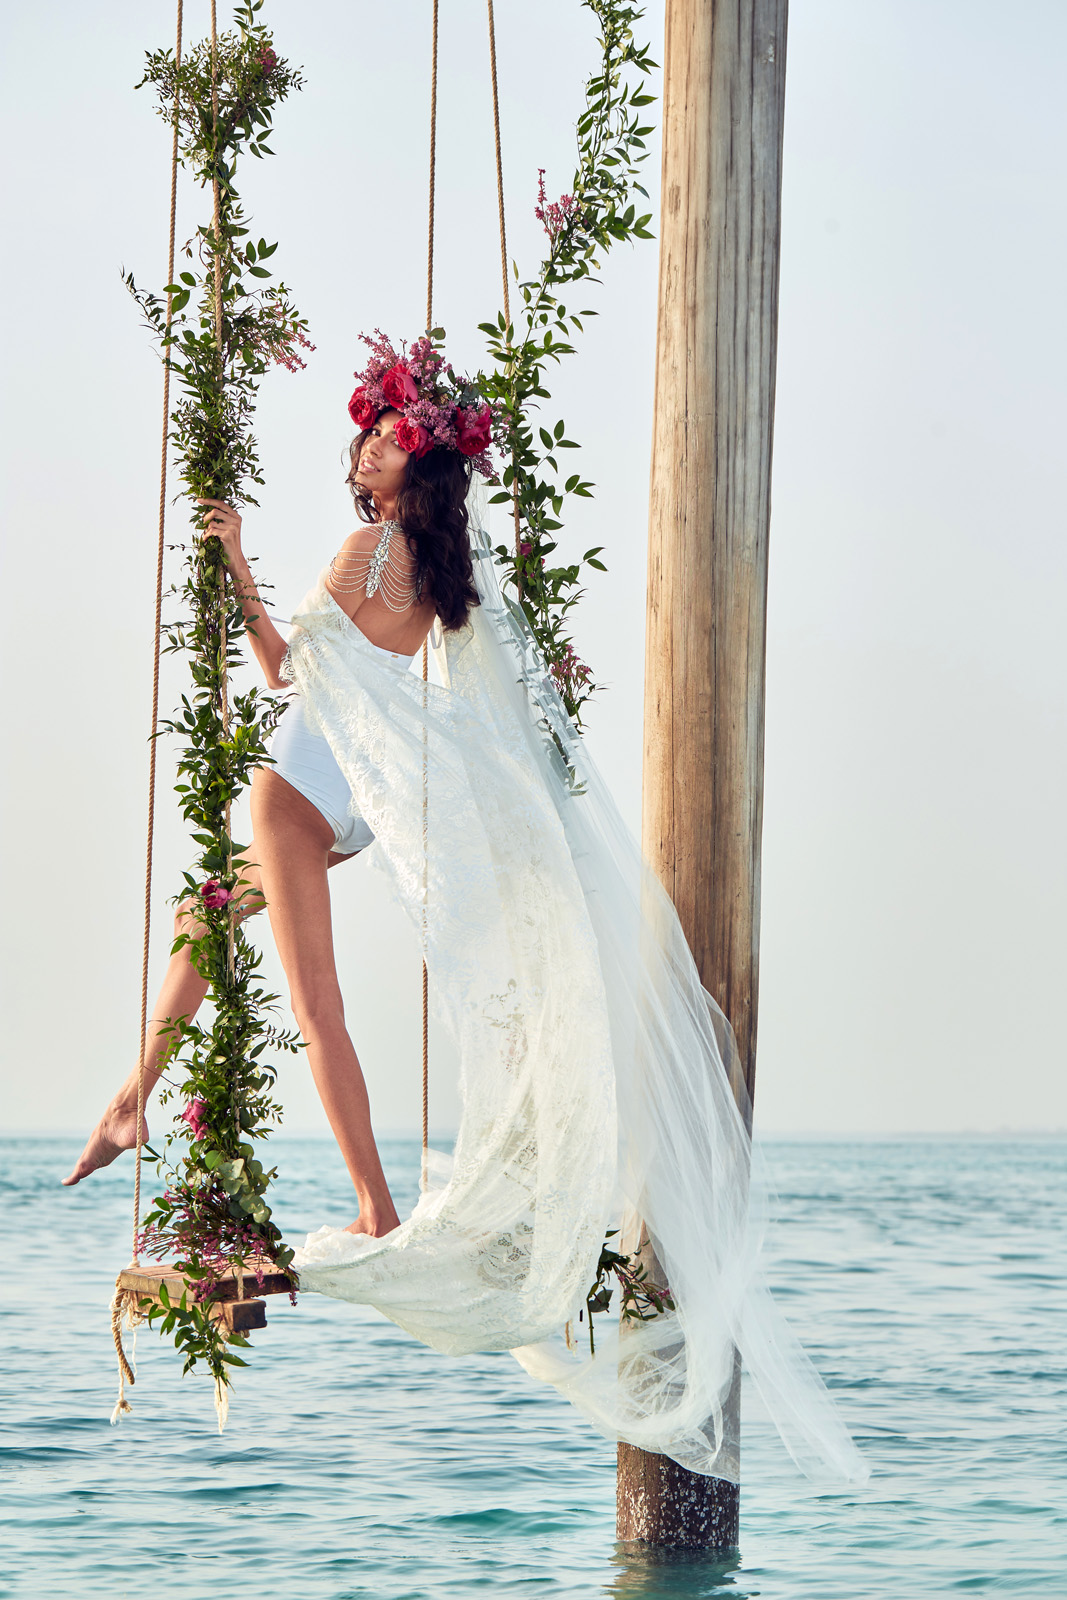 Swimsuit bride on decorated swing - photo by Christophe Viseux Photography